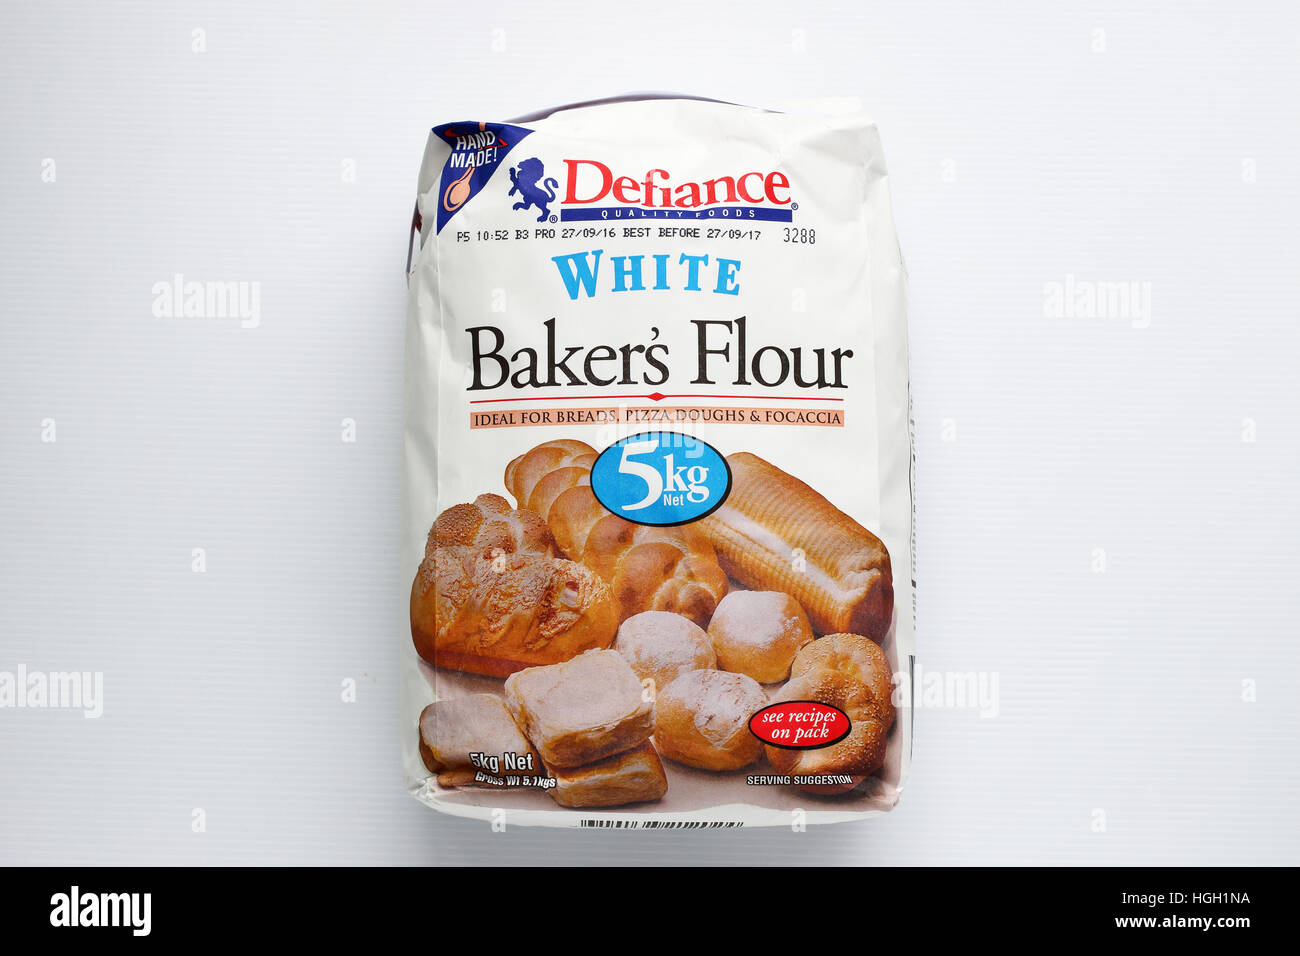 Coles Defiance White Baker Flour Isolated Against White Background Stock Photo Alamy